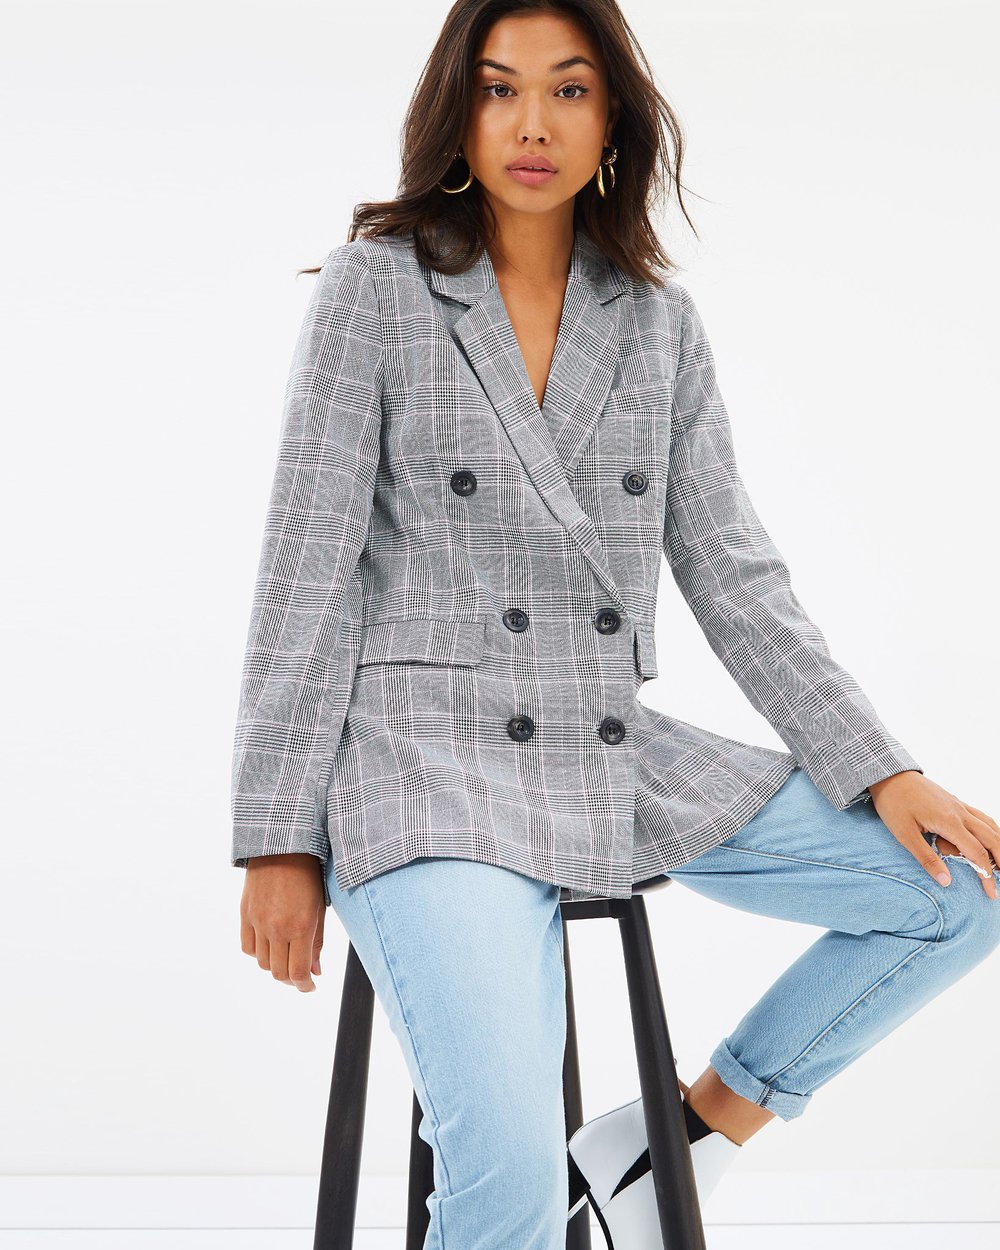 MinkPink, $149.95 from The Iconic